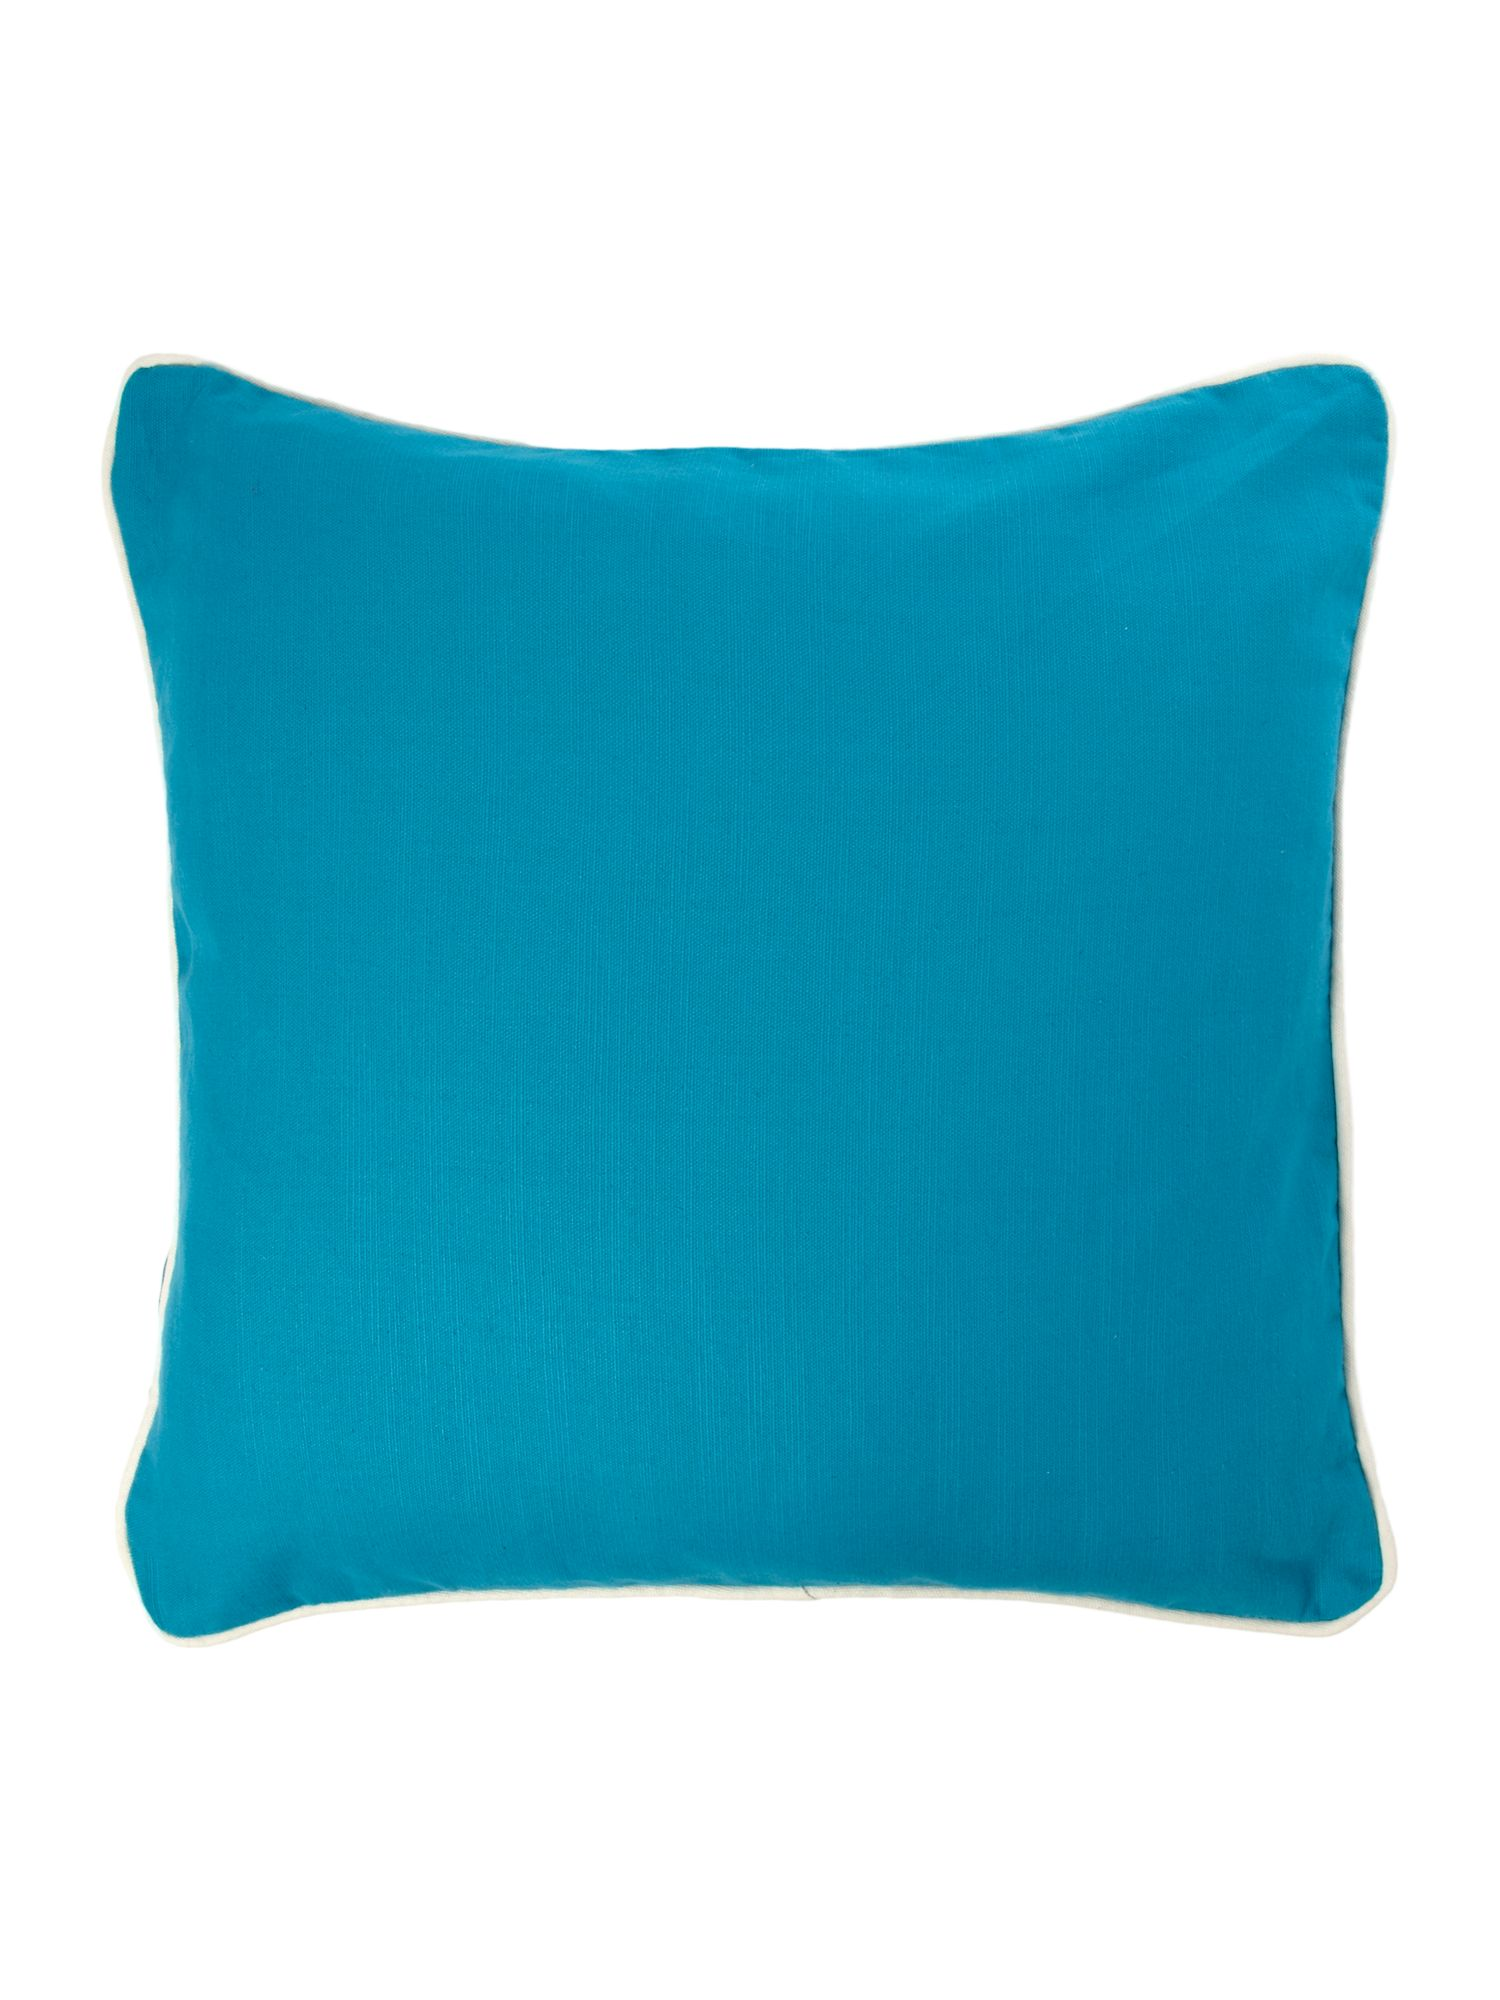 Teal cotton cushion with contrast piping